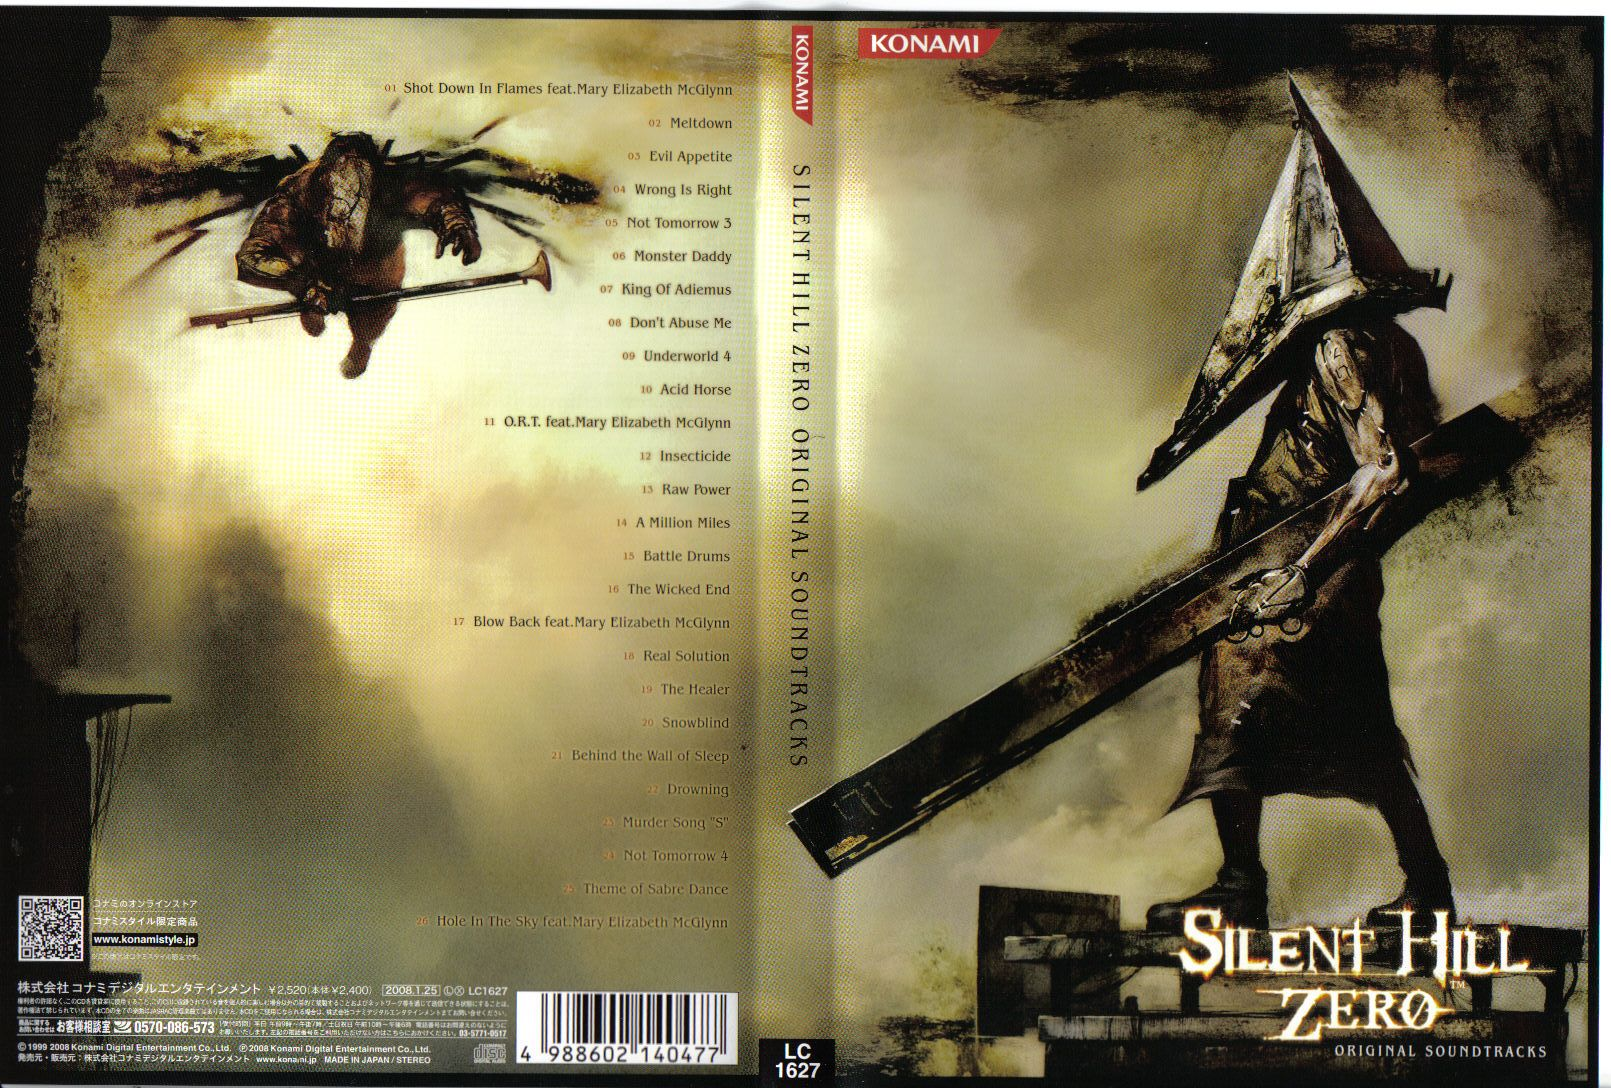 Silent Hill: Origins Original Soundtracks (OST) - Silent Hill Memories